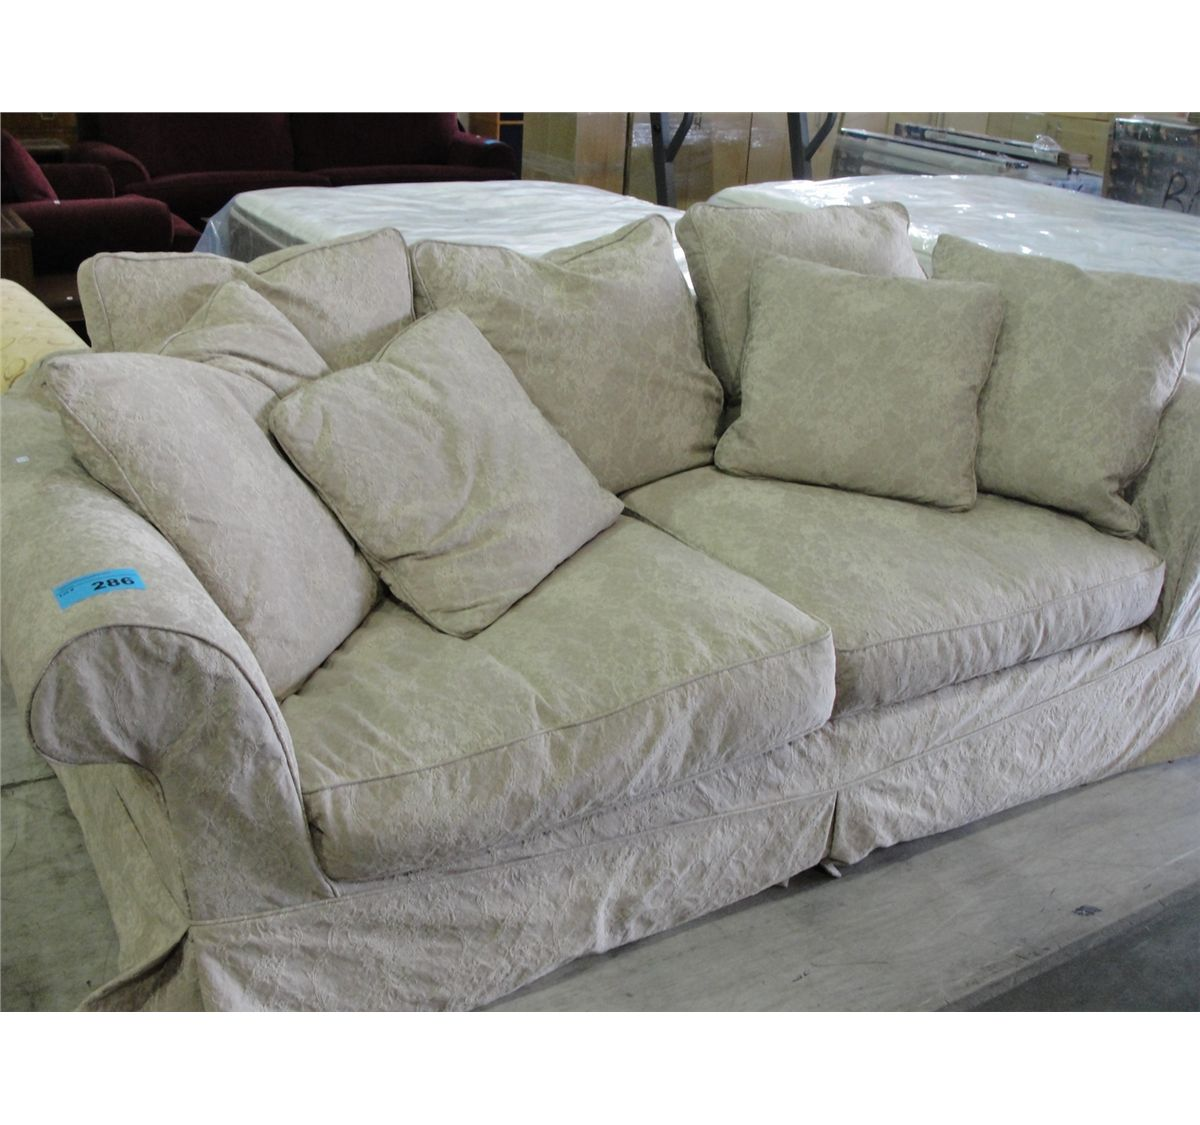 Overstuffed Sofa Lenyx Light Grey Overstuffed Sofa Reviews